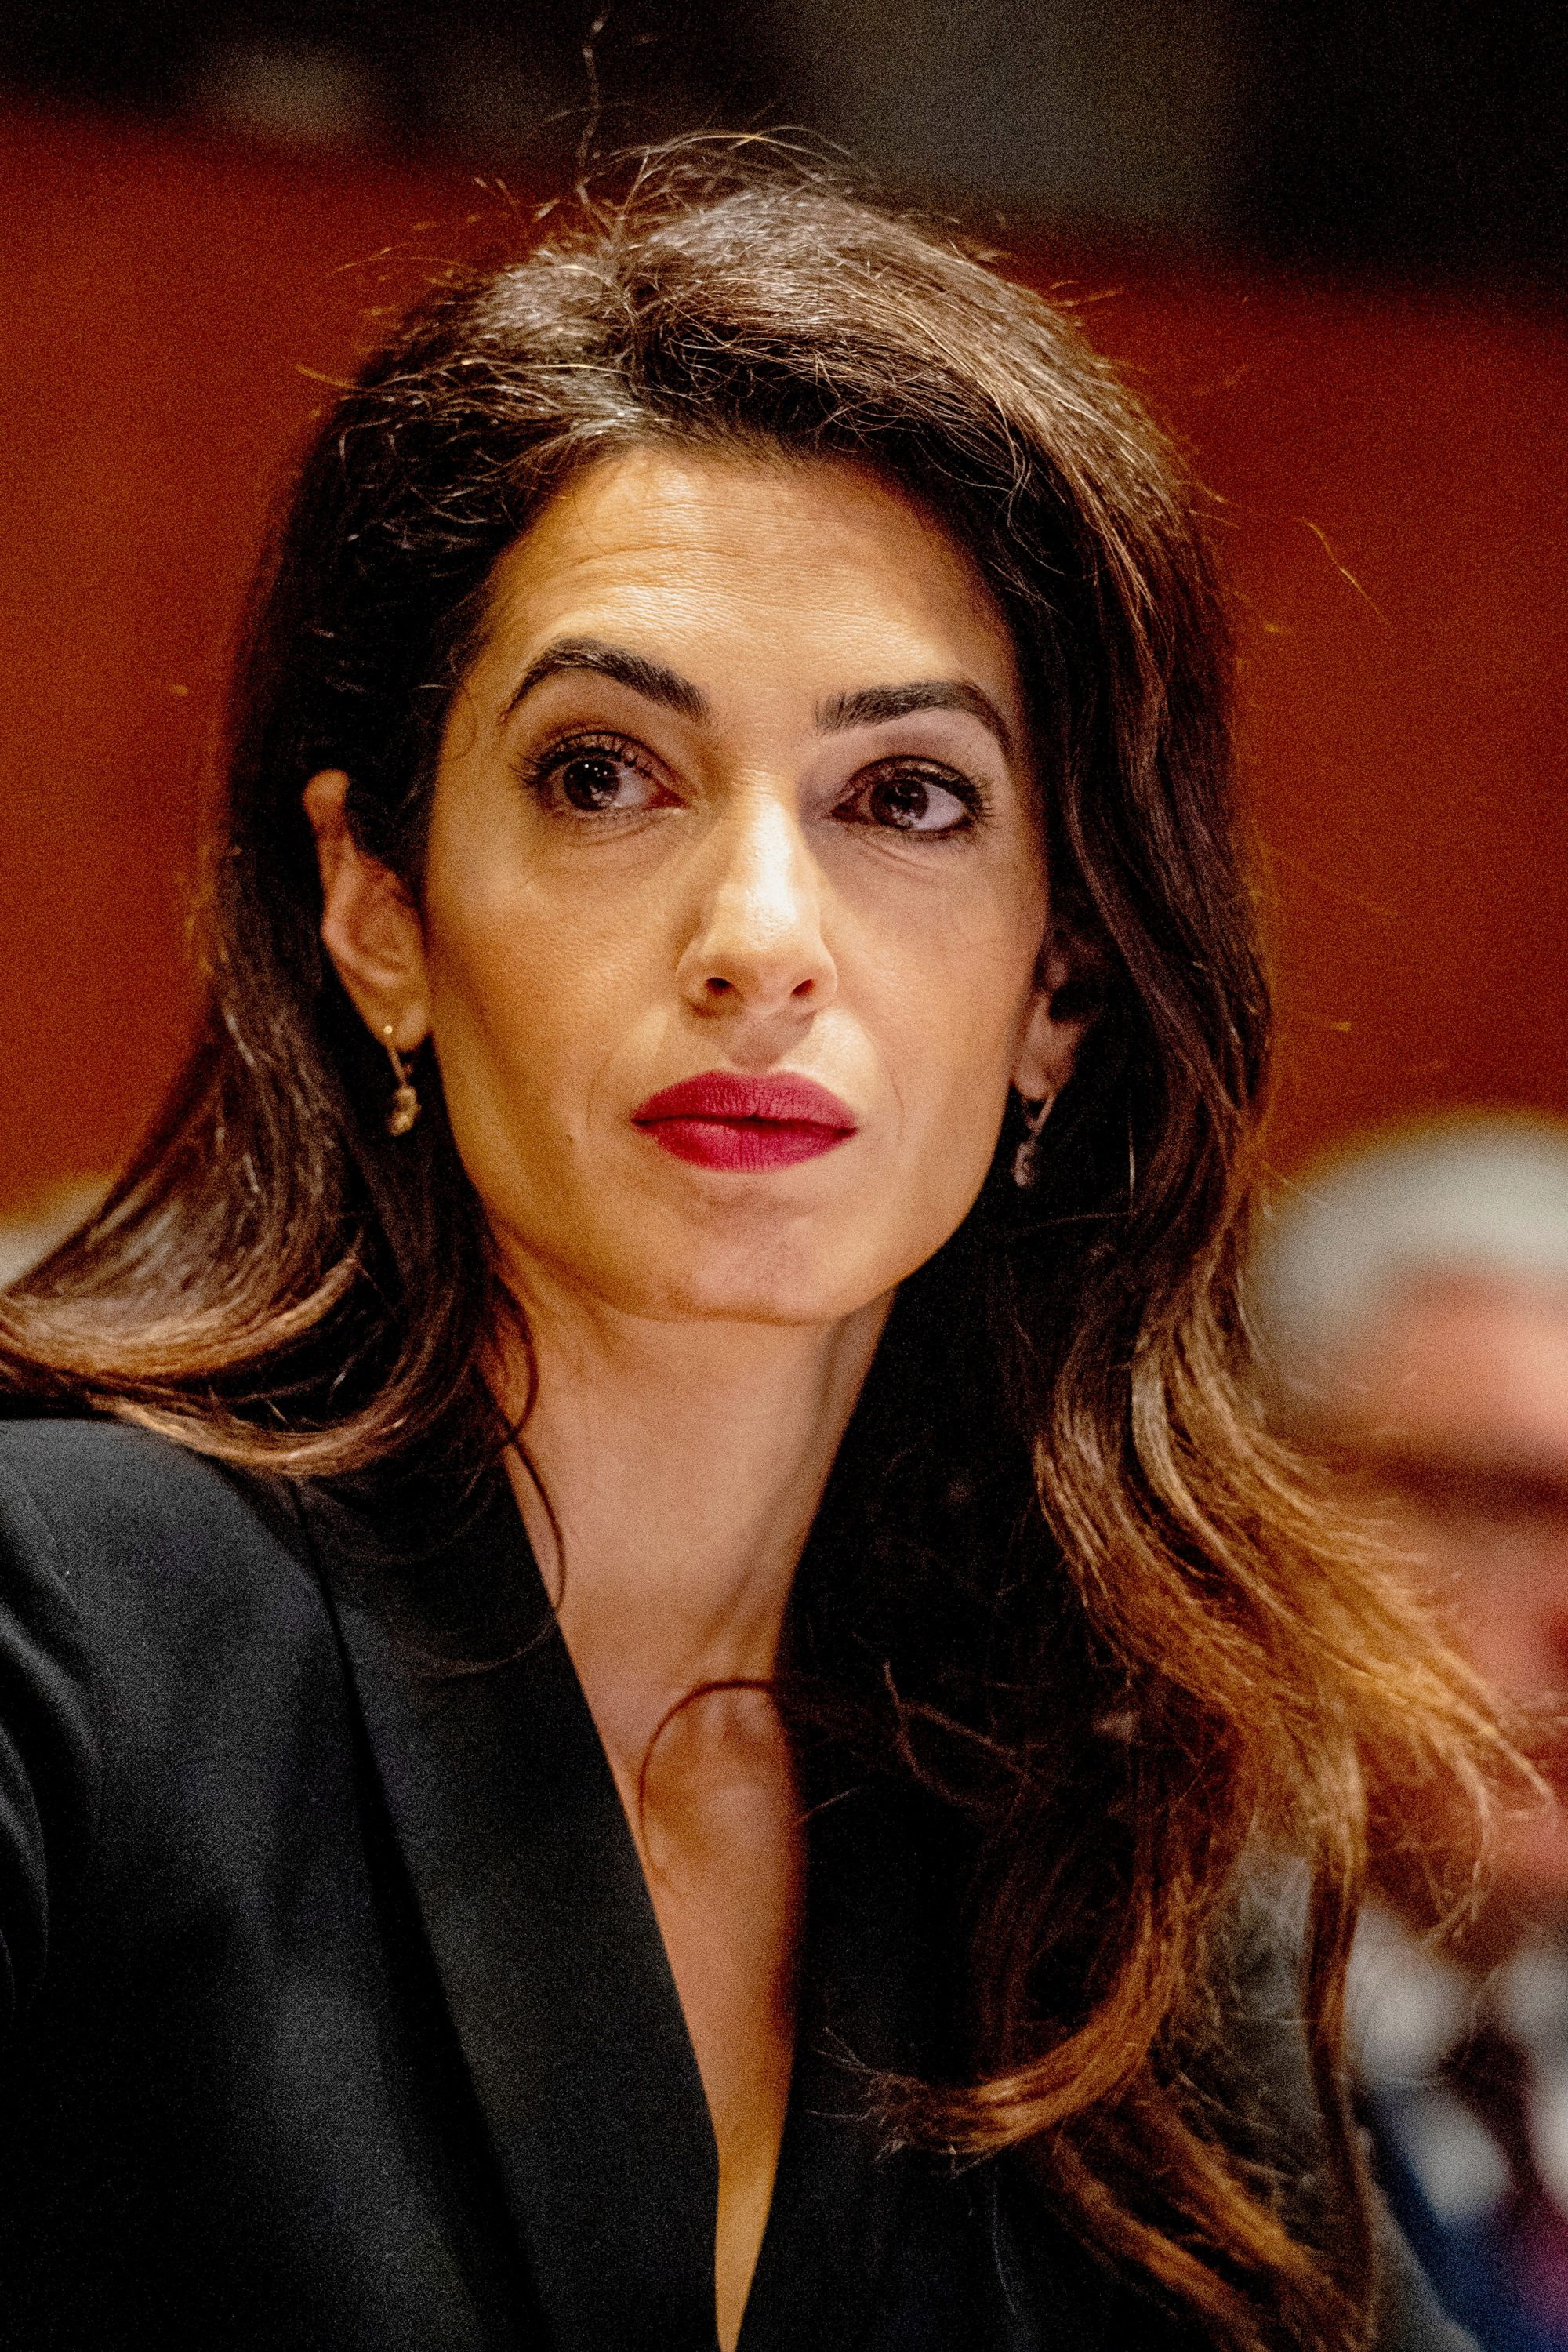 Amal Clooney resigns as UK envoy over Brexit bill - channel 4